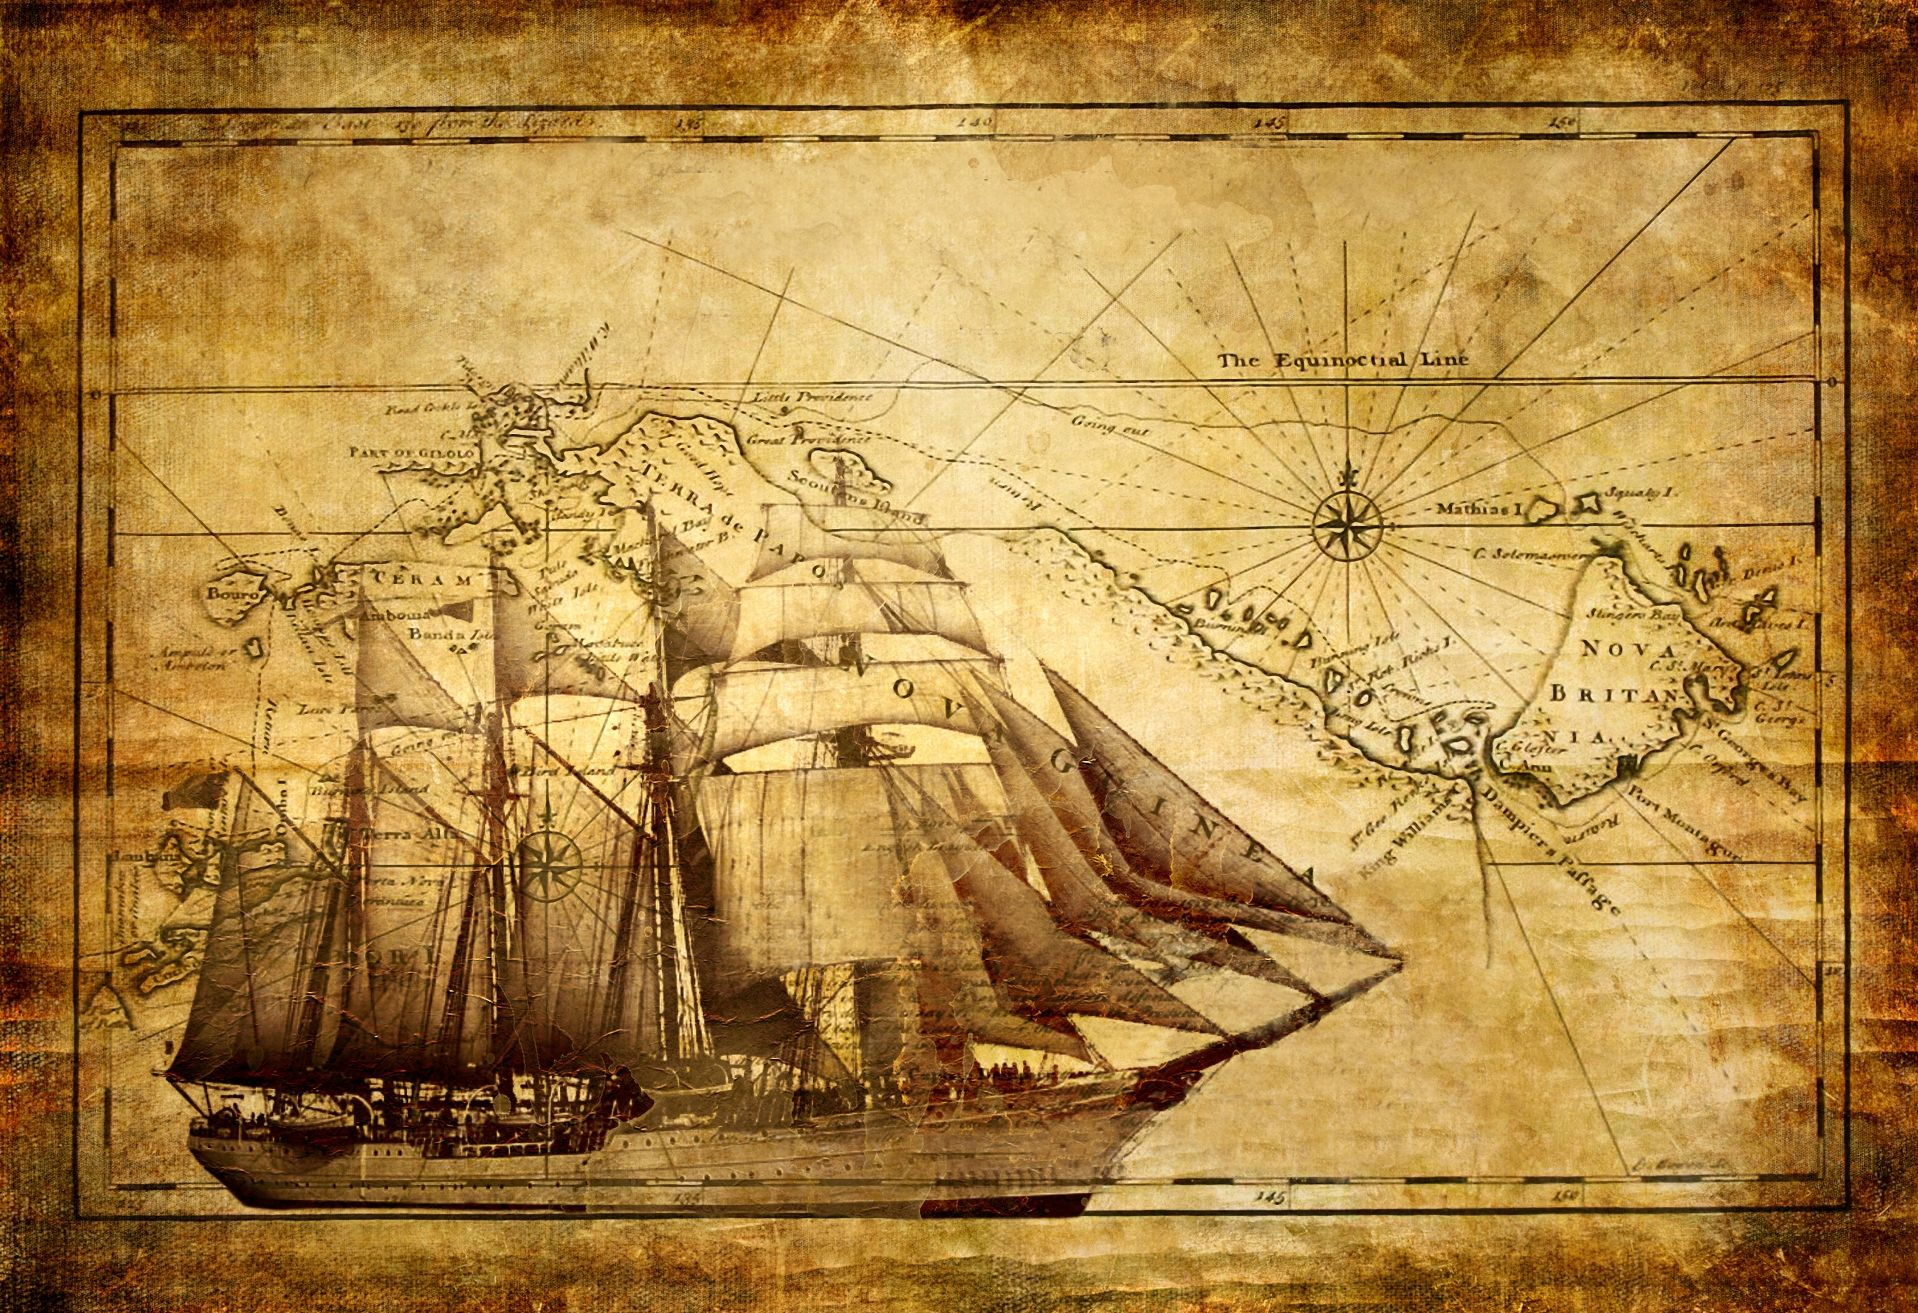 Old map sailing wallpaper desktop free download at free download old old map sailing wallpaper desktop free download at free download old gumiabroncs Choice Image